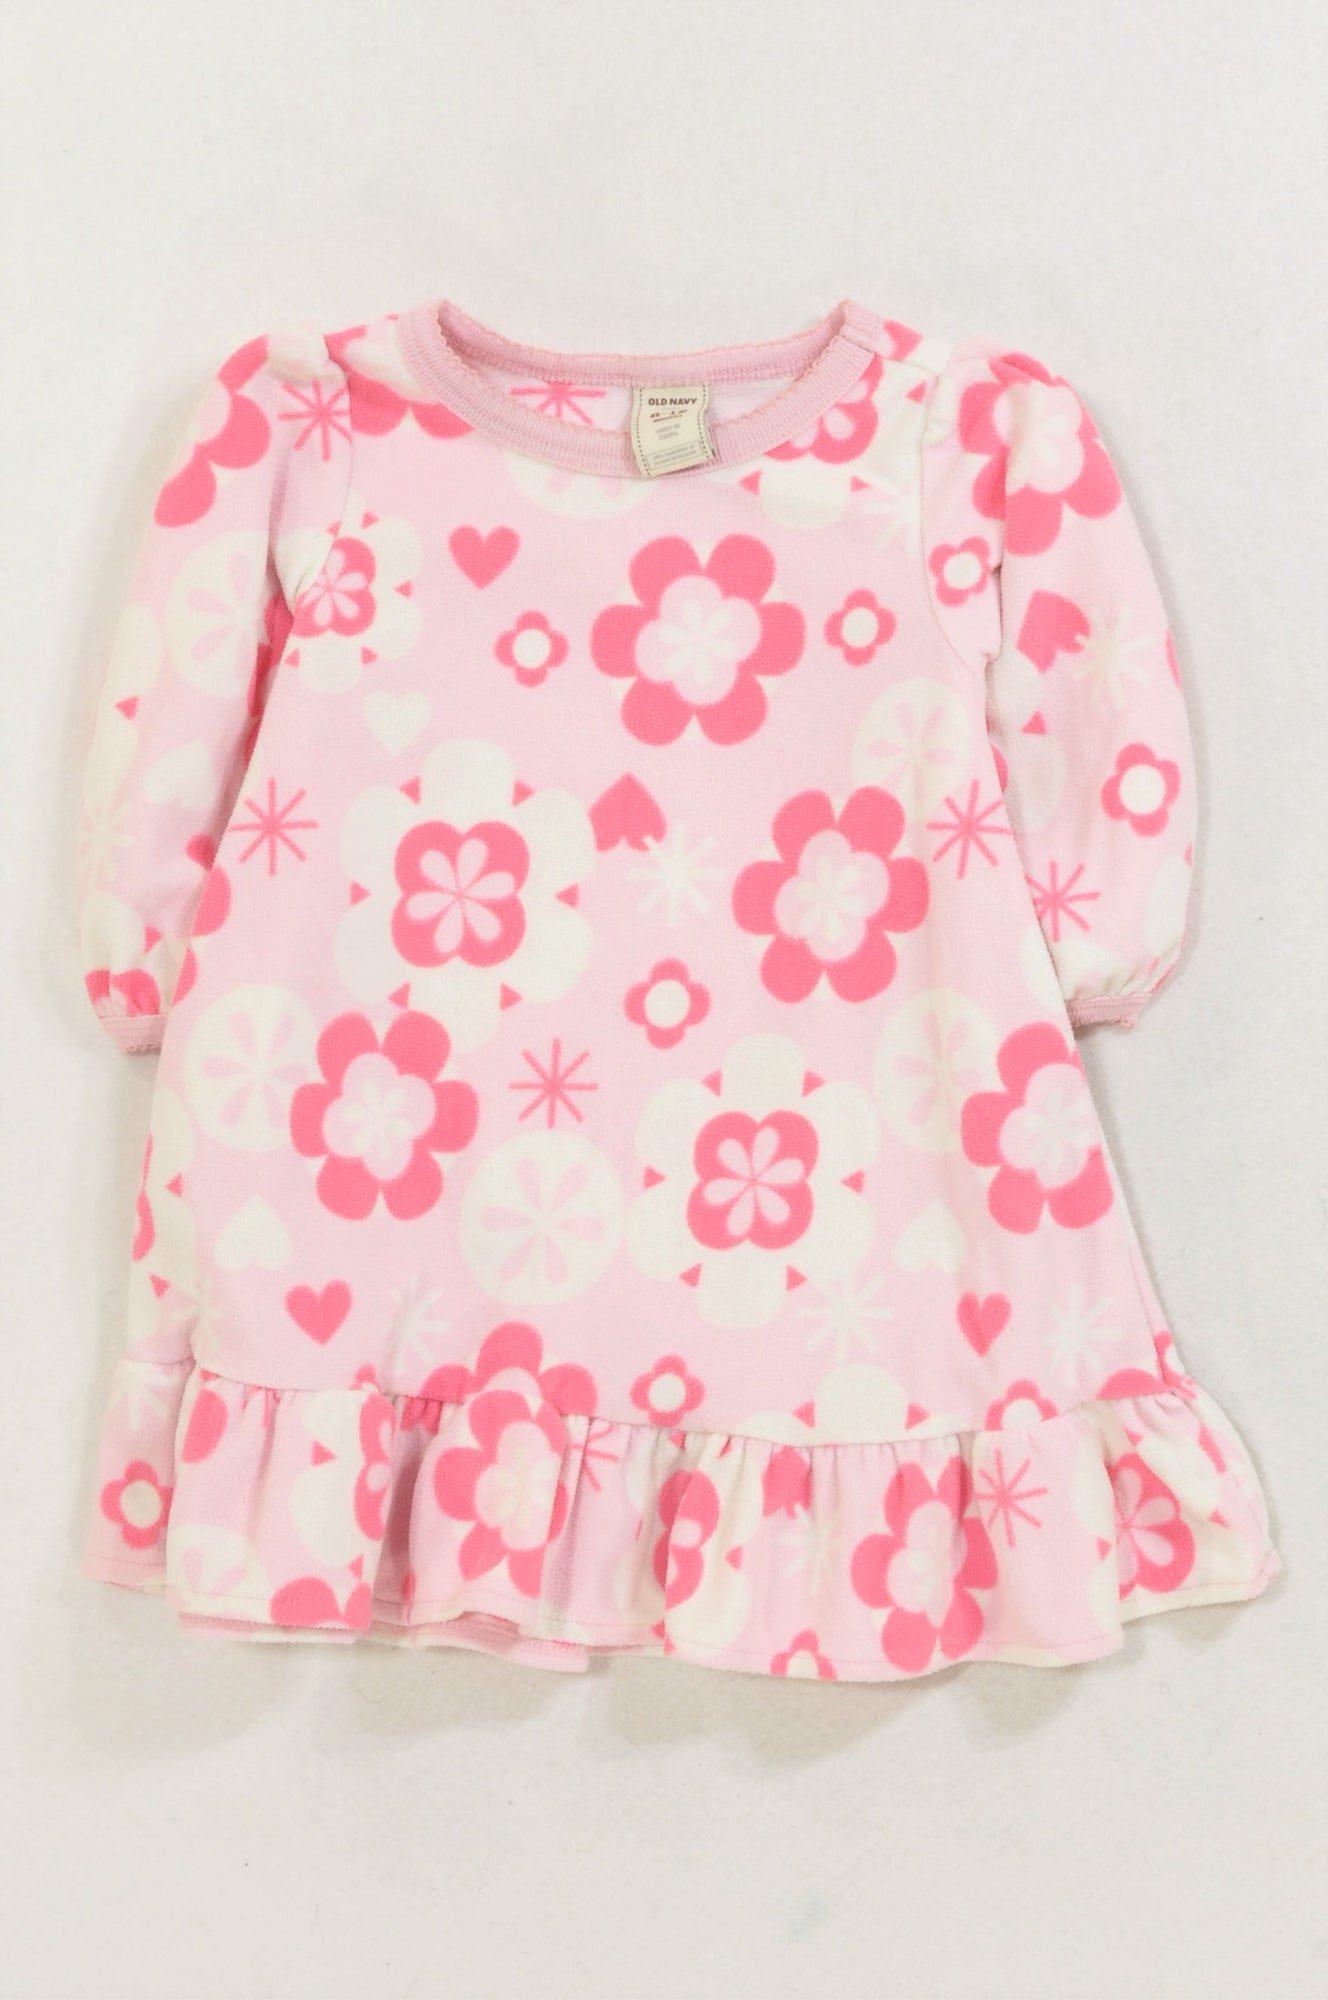 Old Navy Pink Fleece Flower Peplum Dress Girls 6-12 months